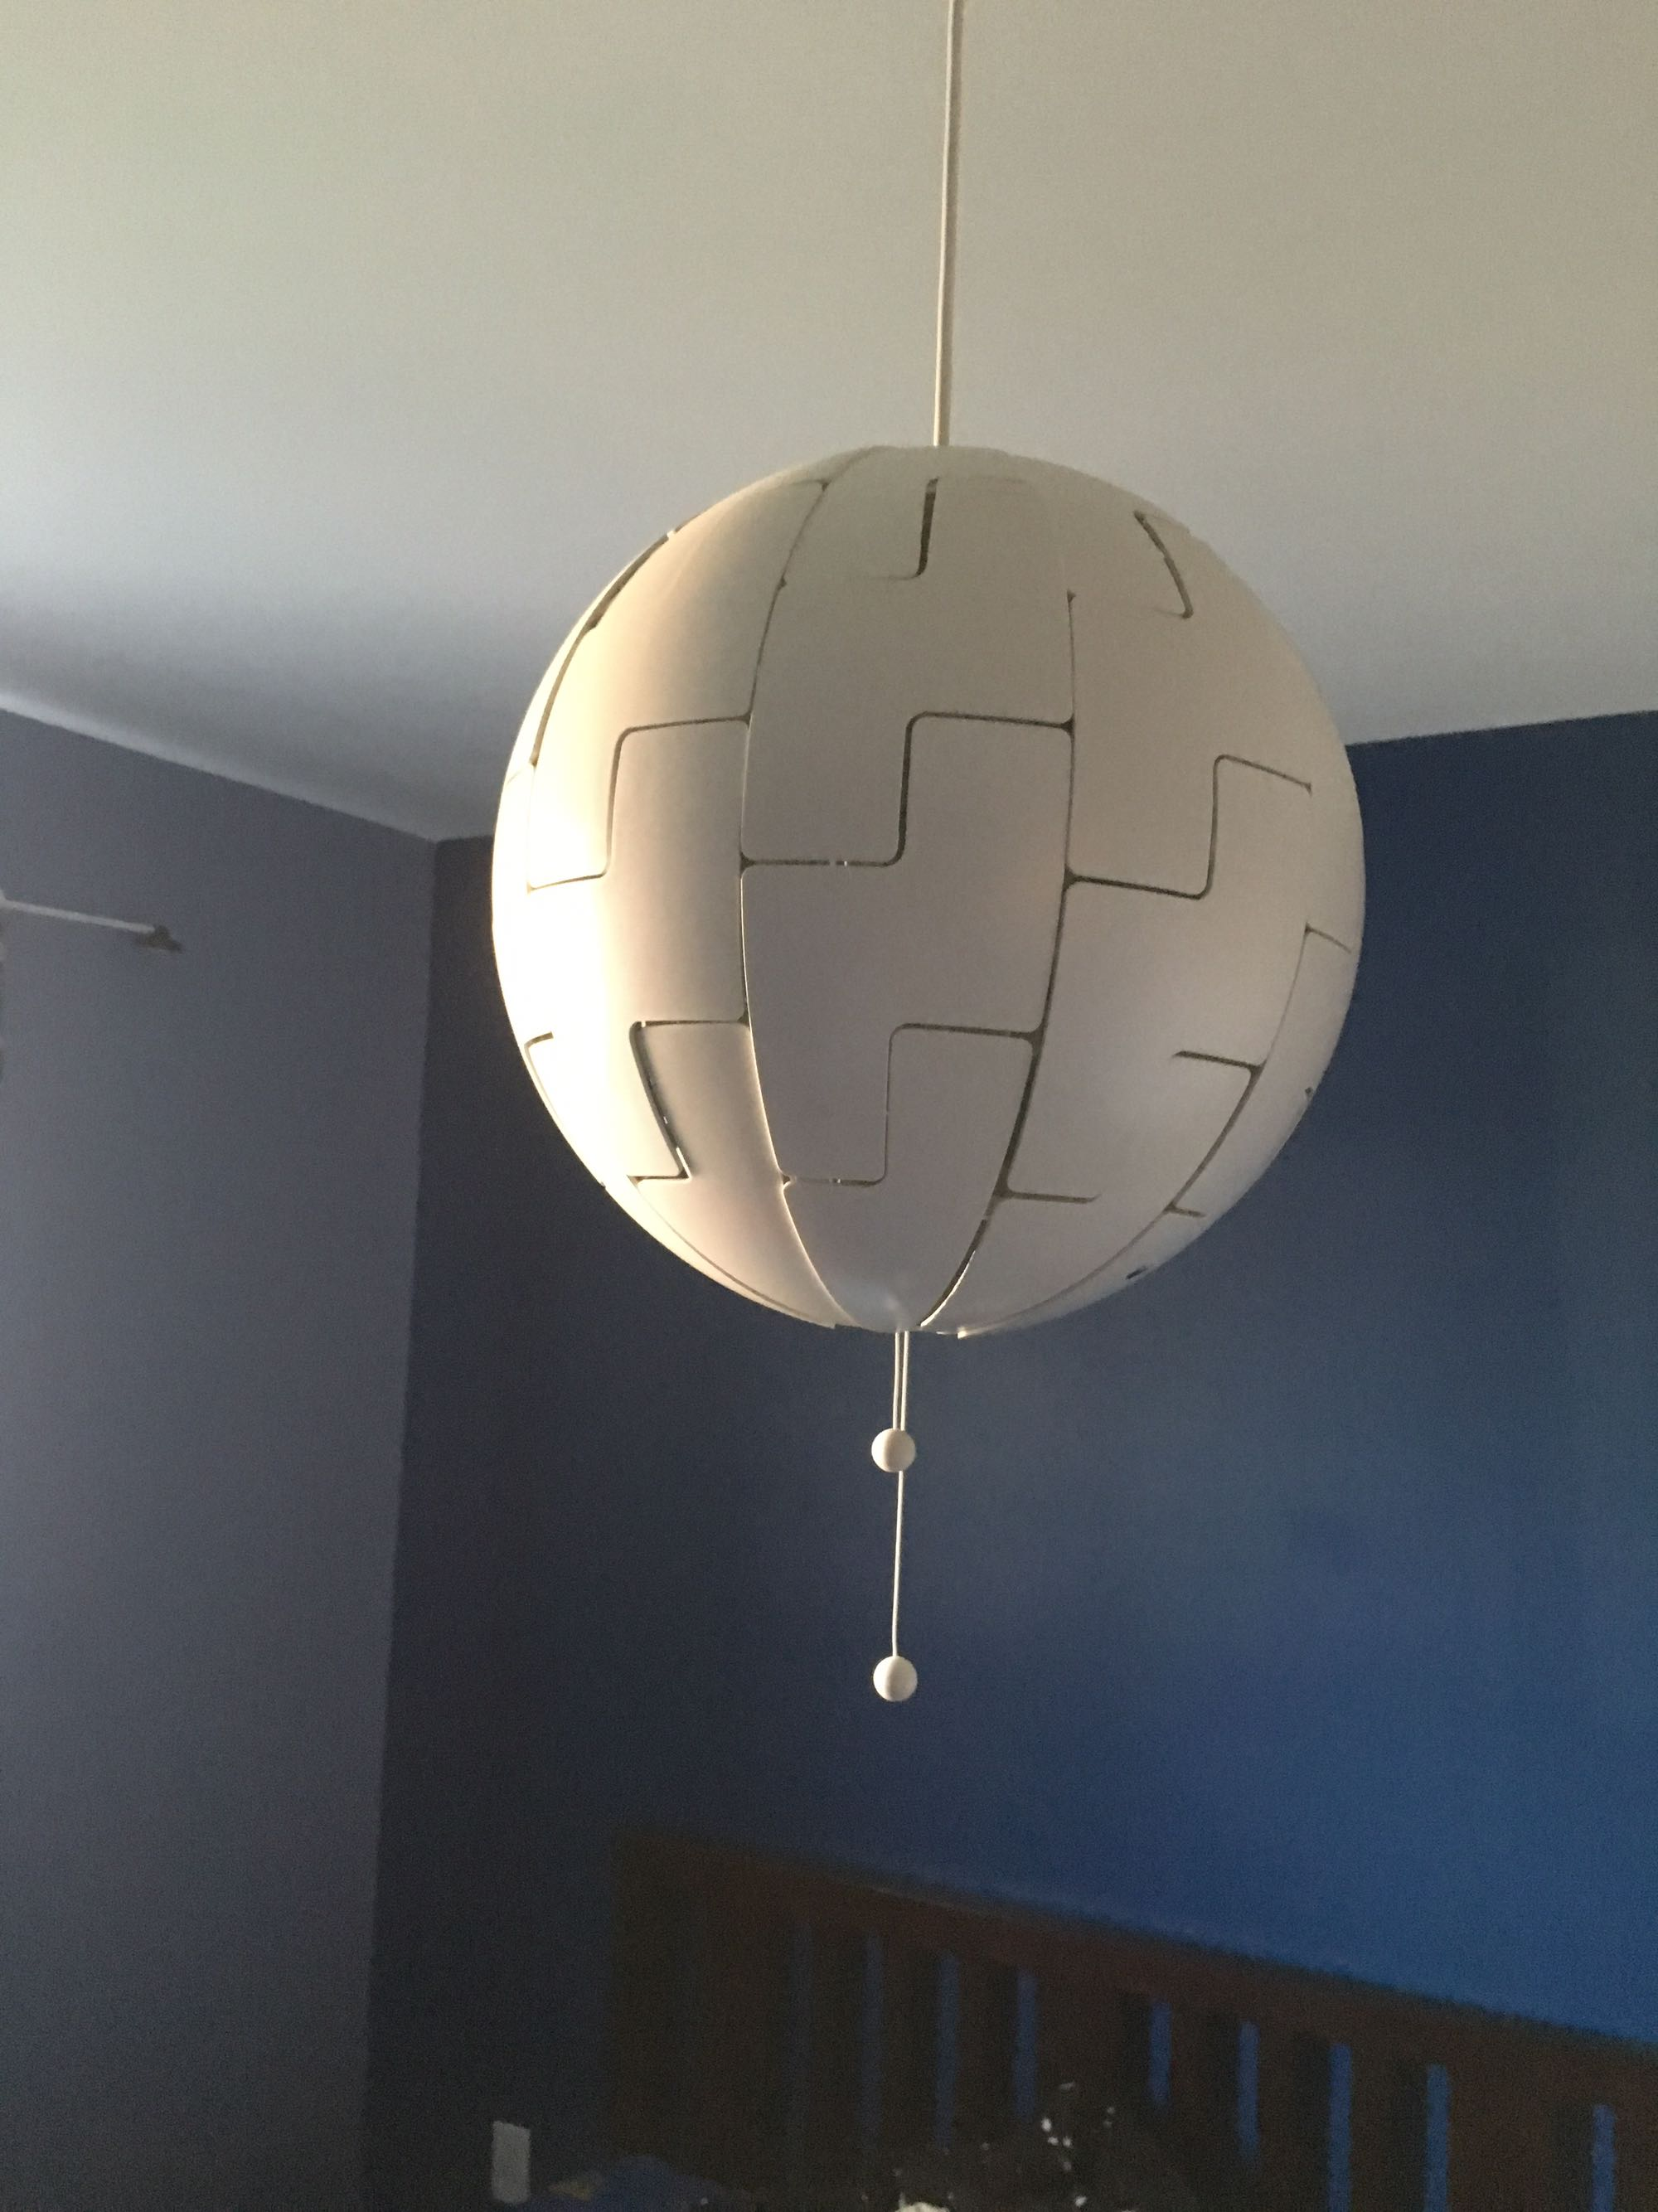 IKEA light fixture